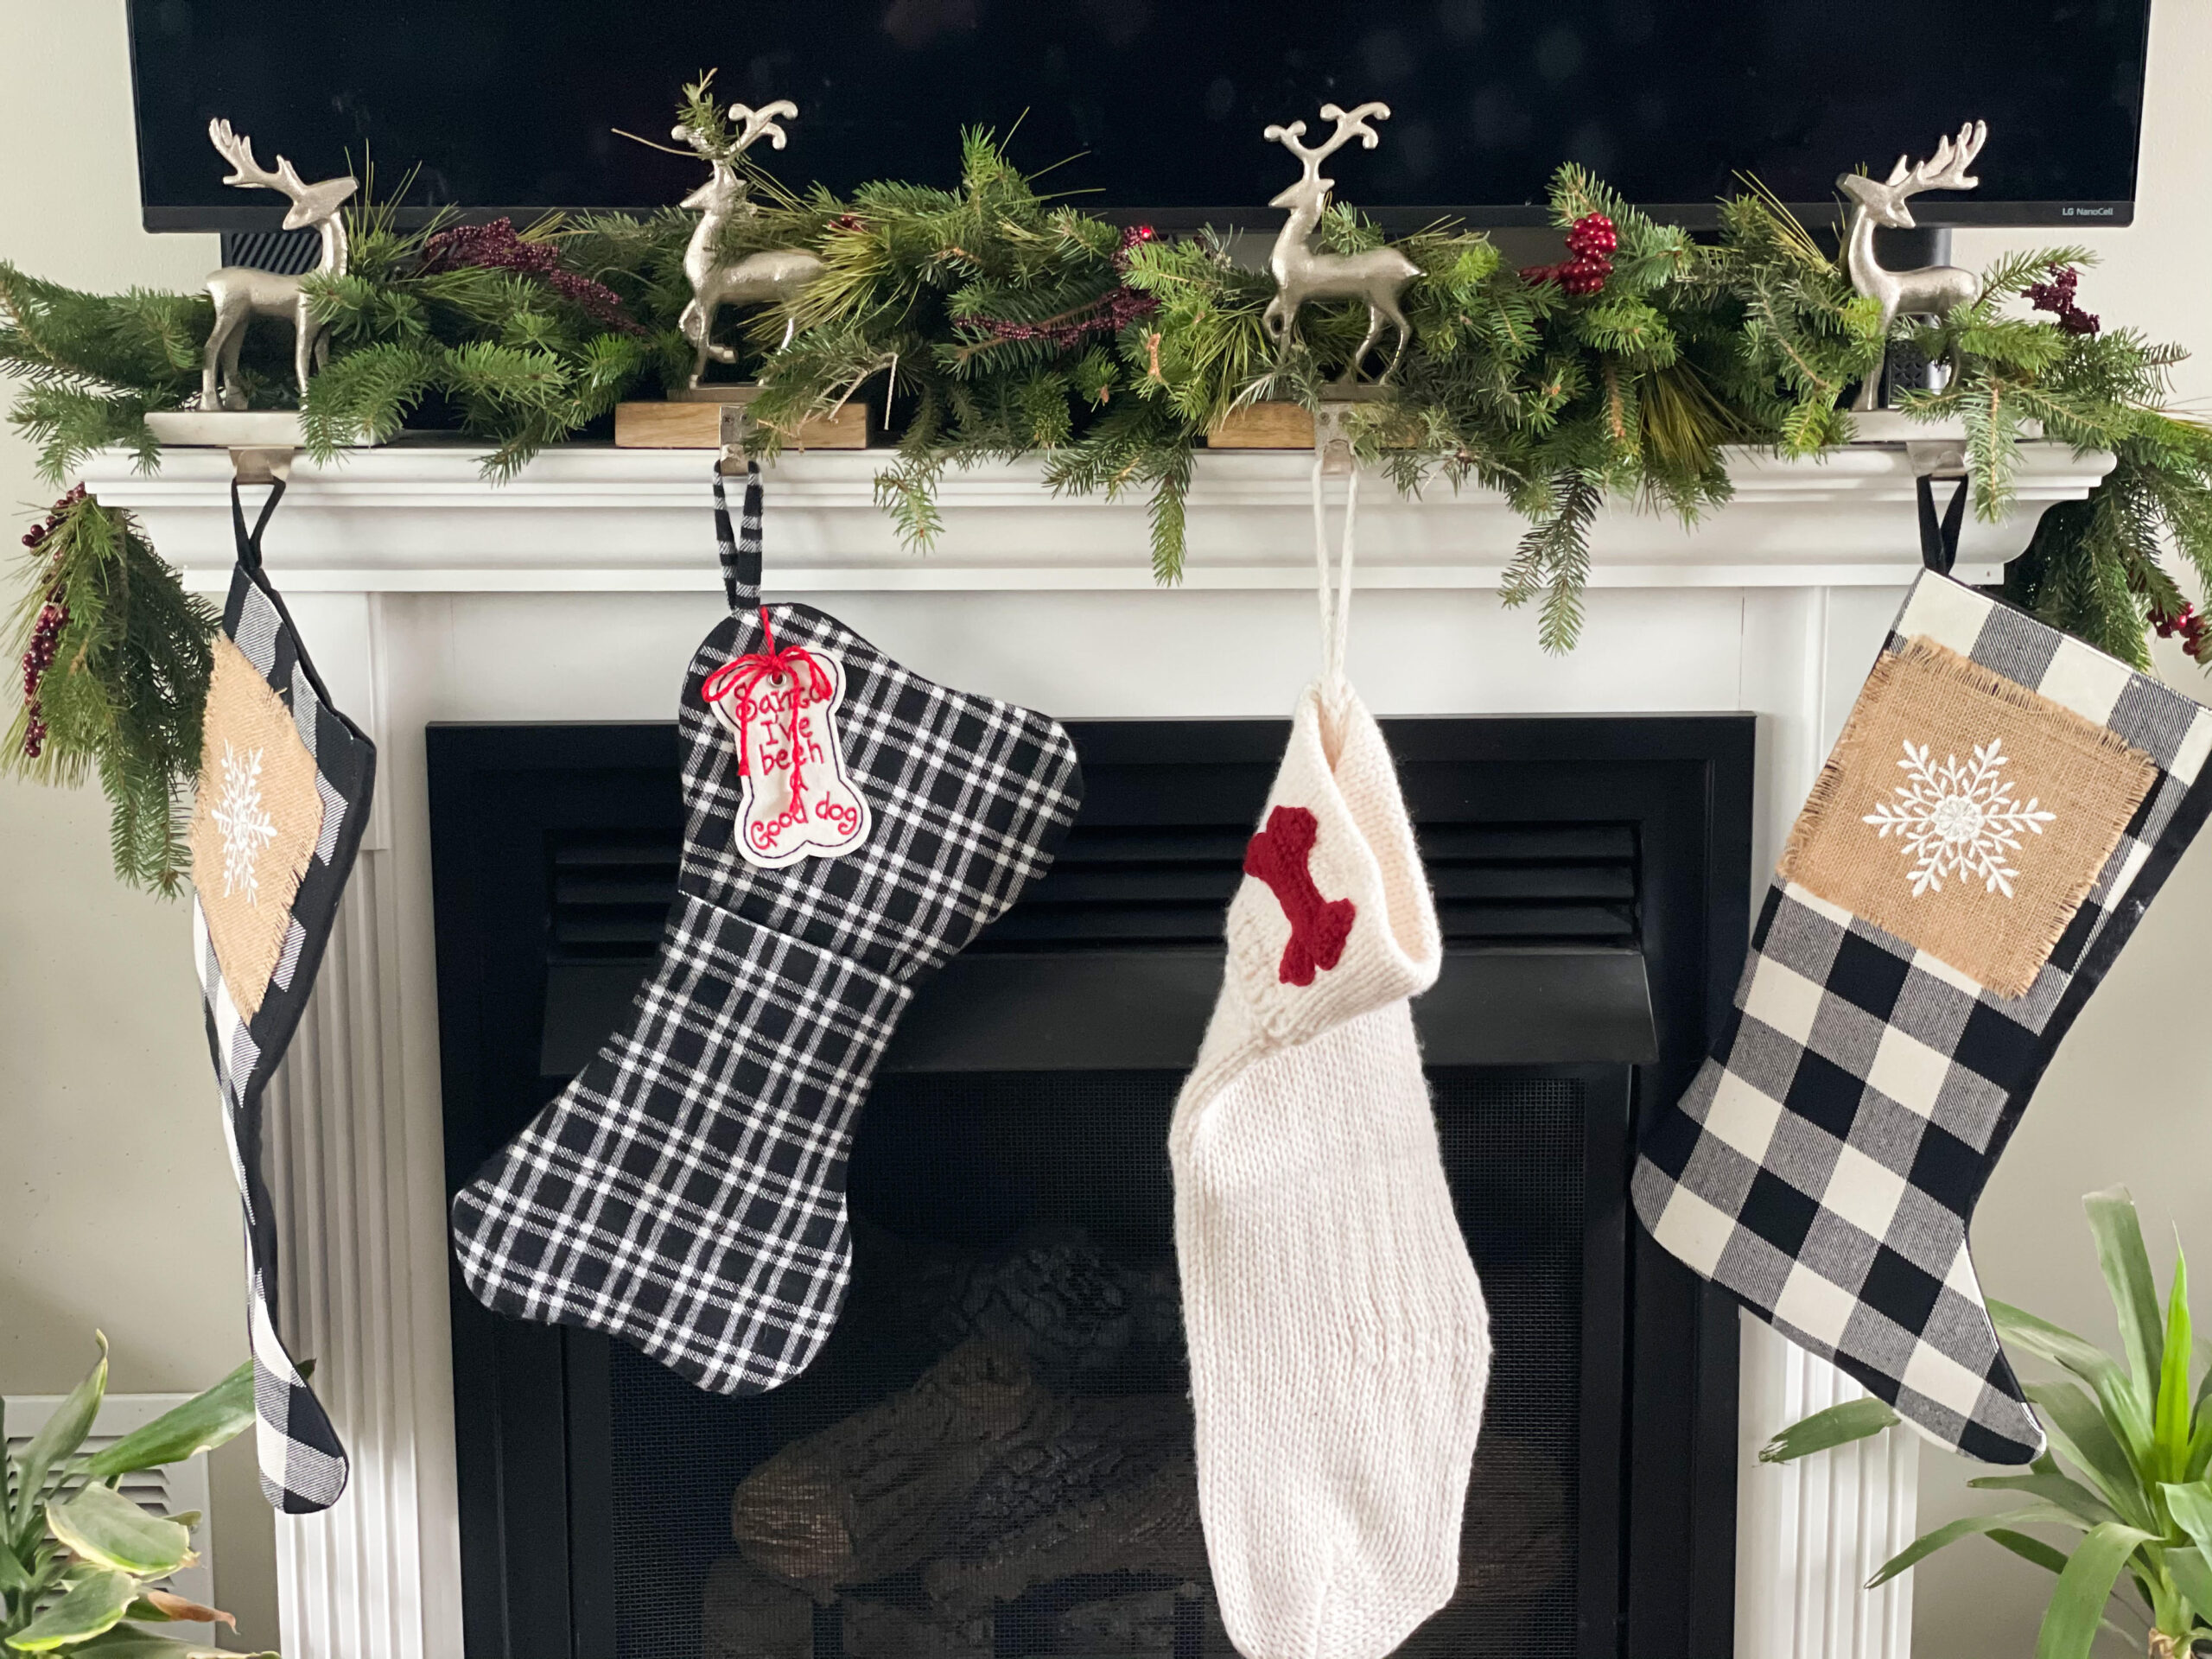 real pine garland on the mantle with stocking hanging